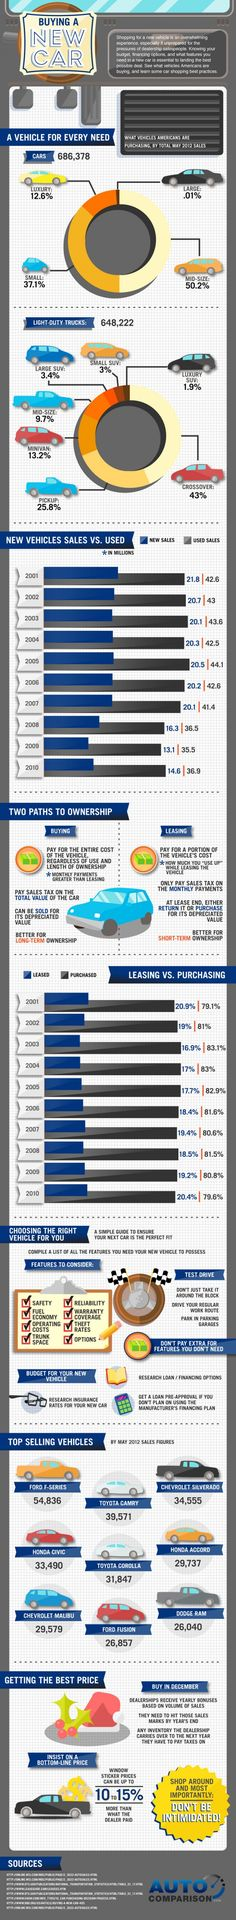 Buying a car can be a job within itself. With hours of research days of car hunting at dealerships and countless test-drives - it is one of the most important purchases next to buying a house. Today's infographic gives a unique view into the demogra Buying New Car, Car Buying Guide, Next To Buy, Car Facts, Go Car, Car Purchase, Car Buyer, Car Advertising, Car Loans